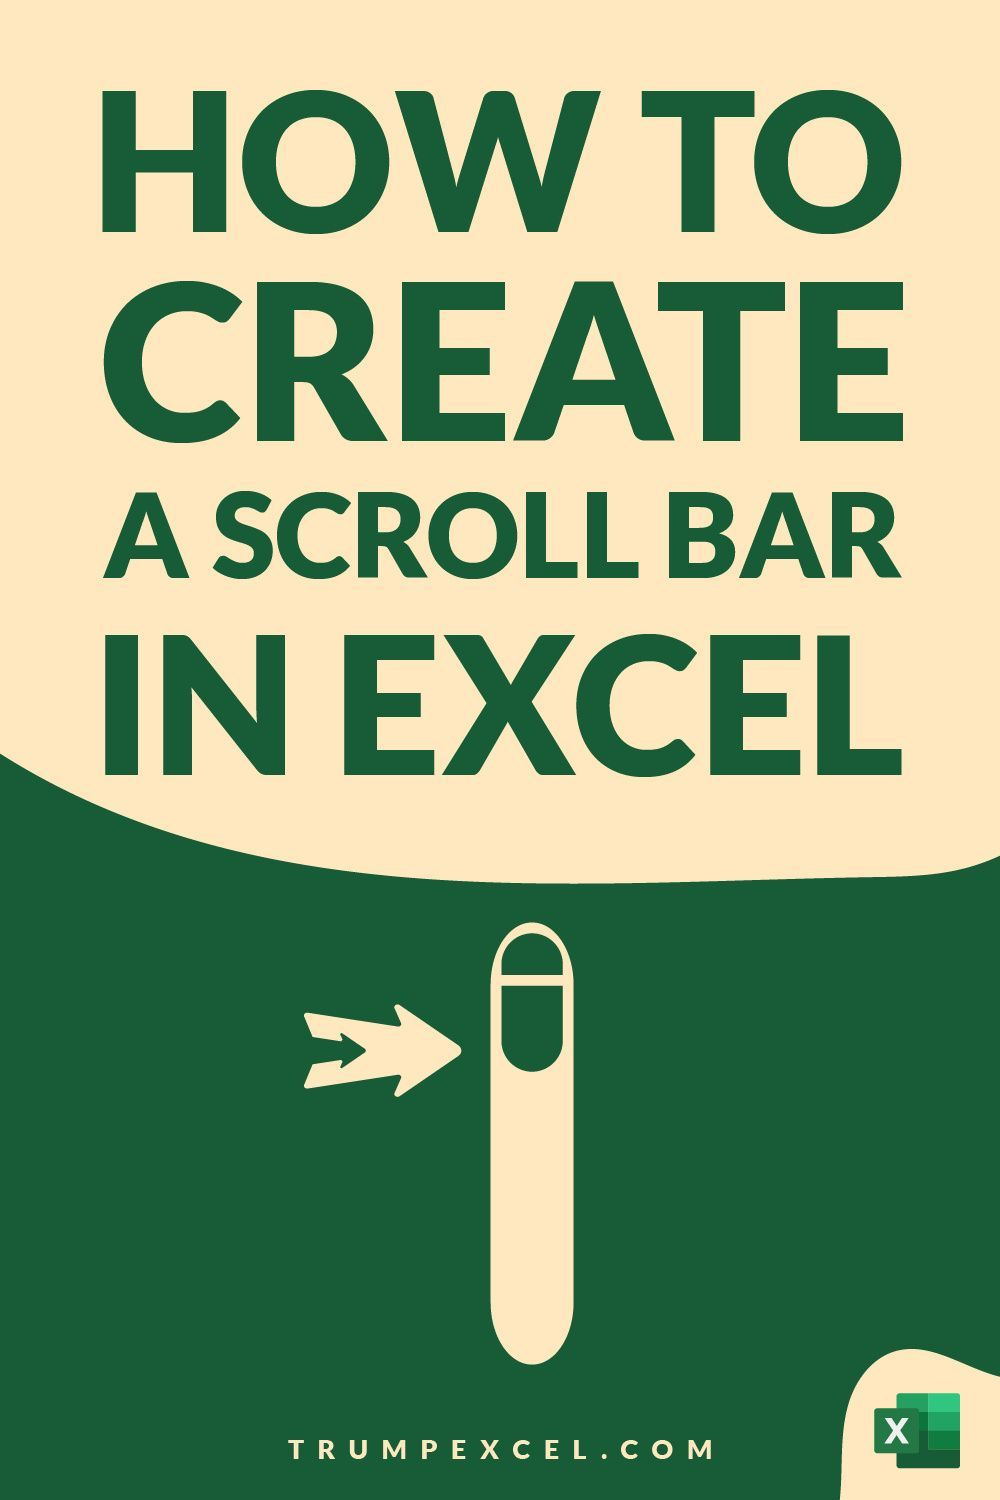 How to Create a Scroll Bar in Excel - Step by Step